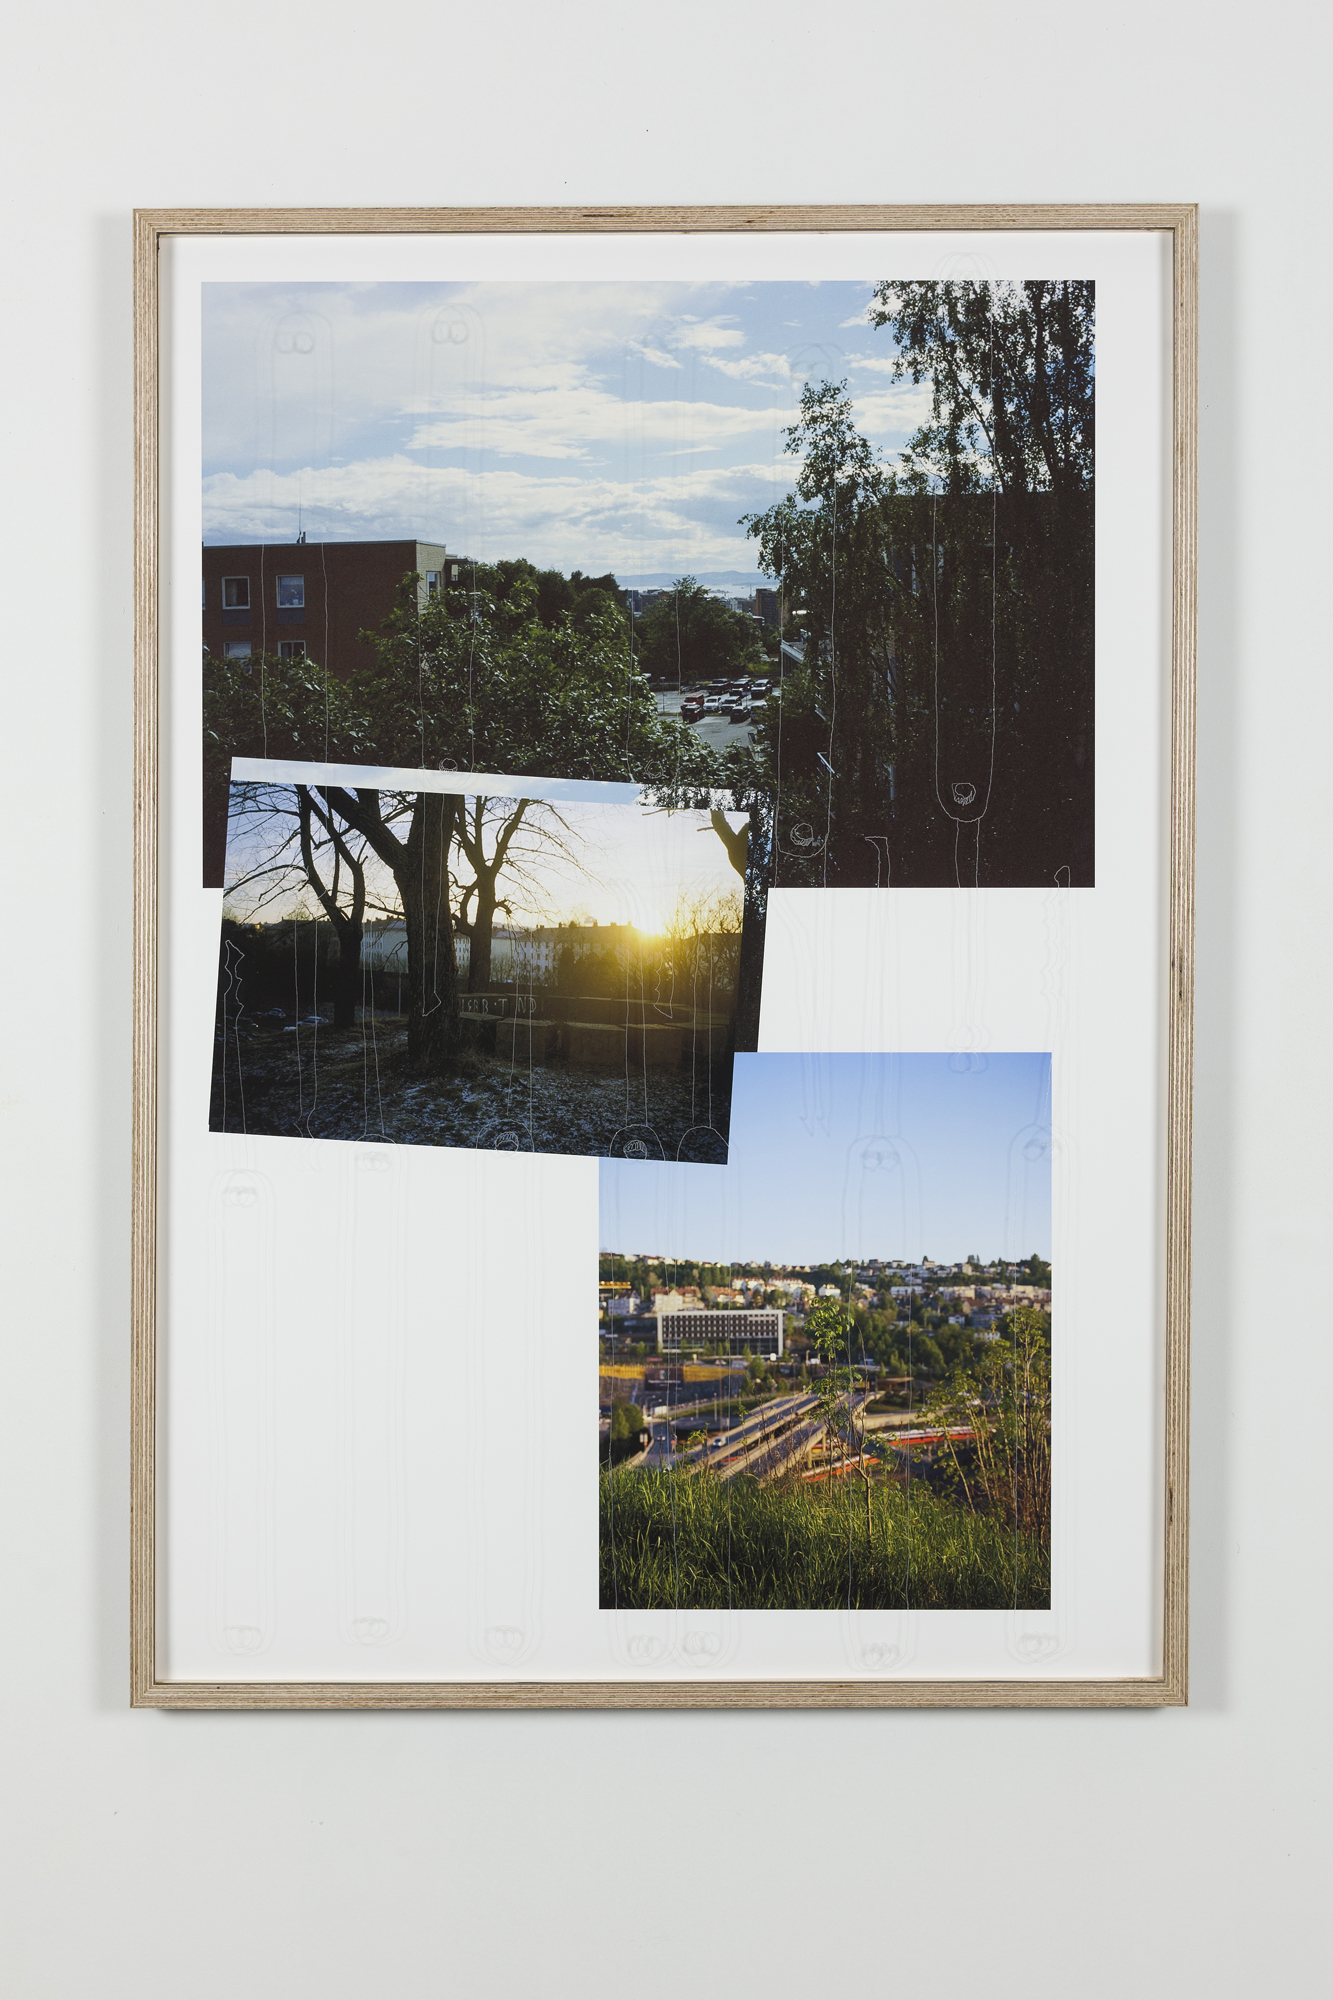 Jon Benjamin Tallerås, Untitled (Lock Picking is Key) III, 2019, inkjet print, scratched ar-glass, artist made frame, 63 x 90 cm, unique